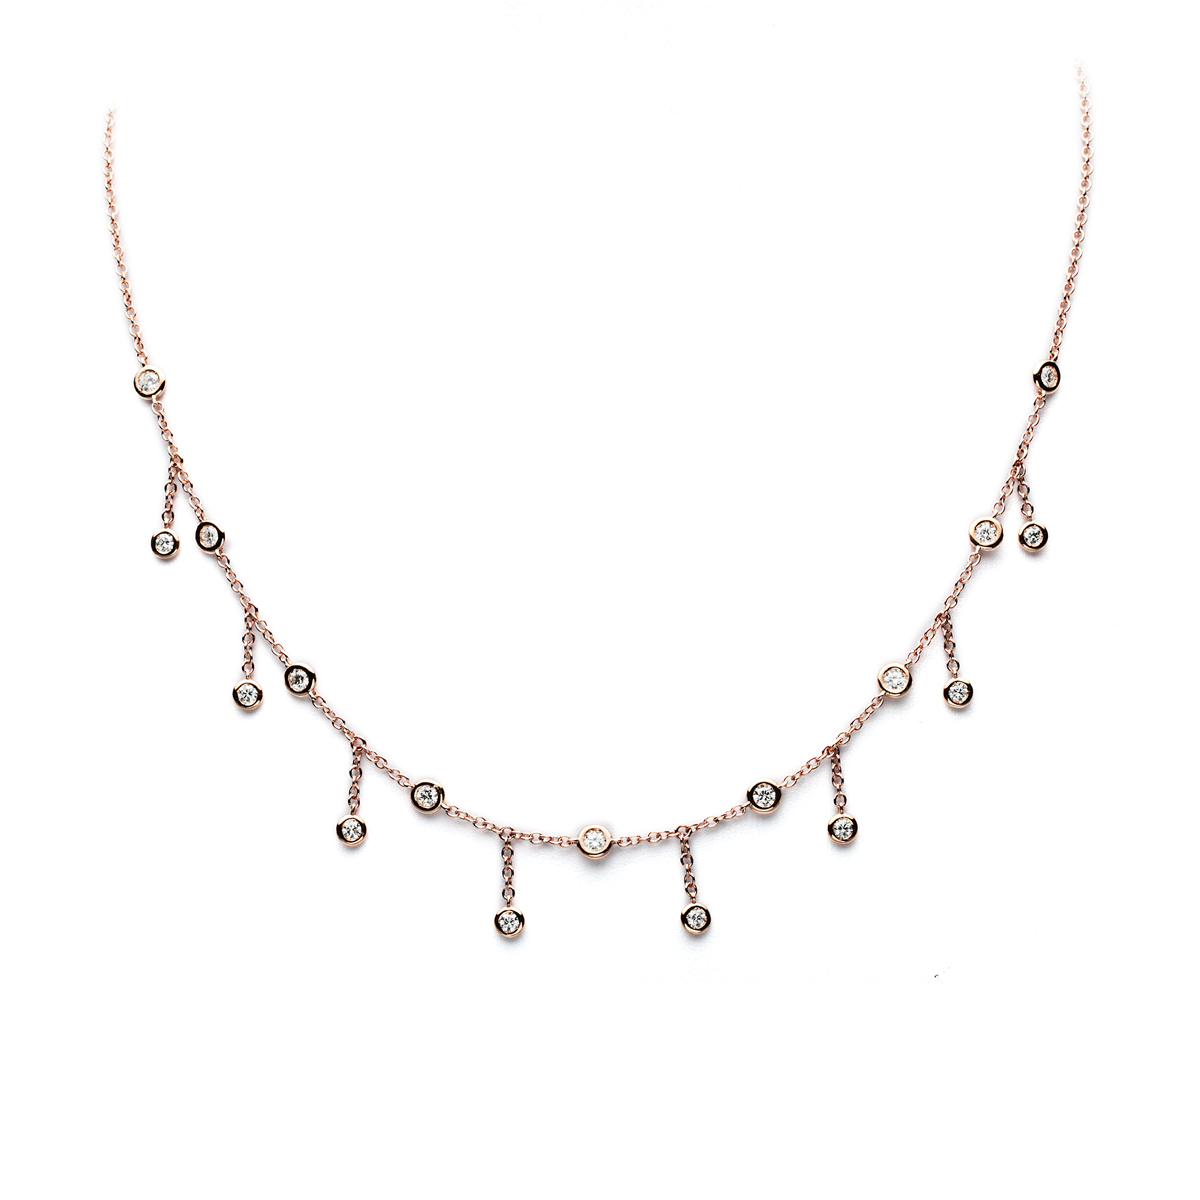 Red Gold Necklace with Fluctuating Round Diamonds